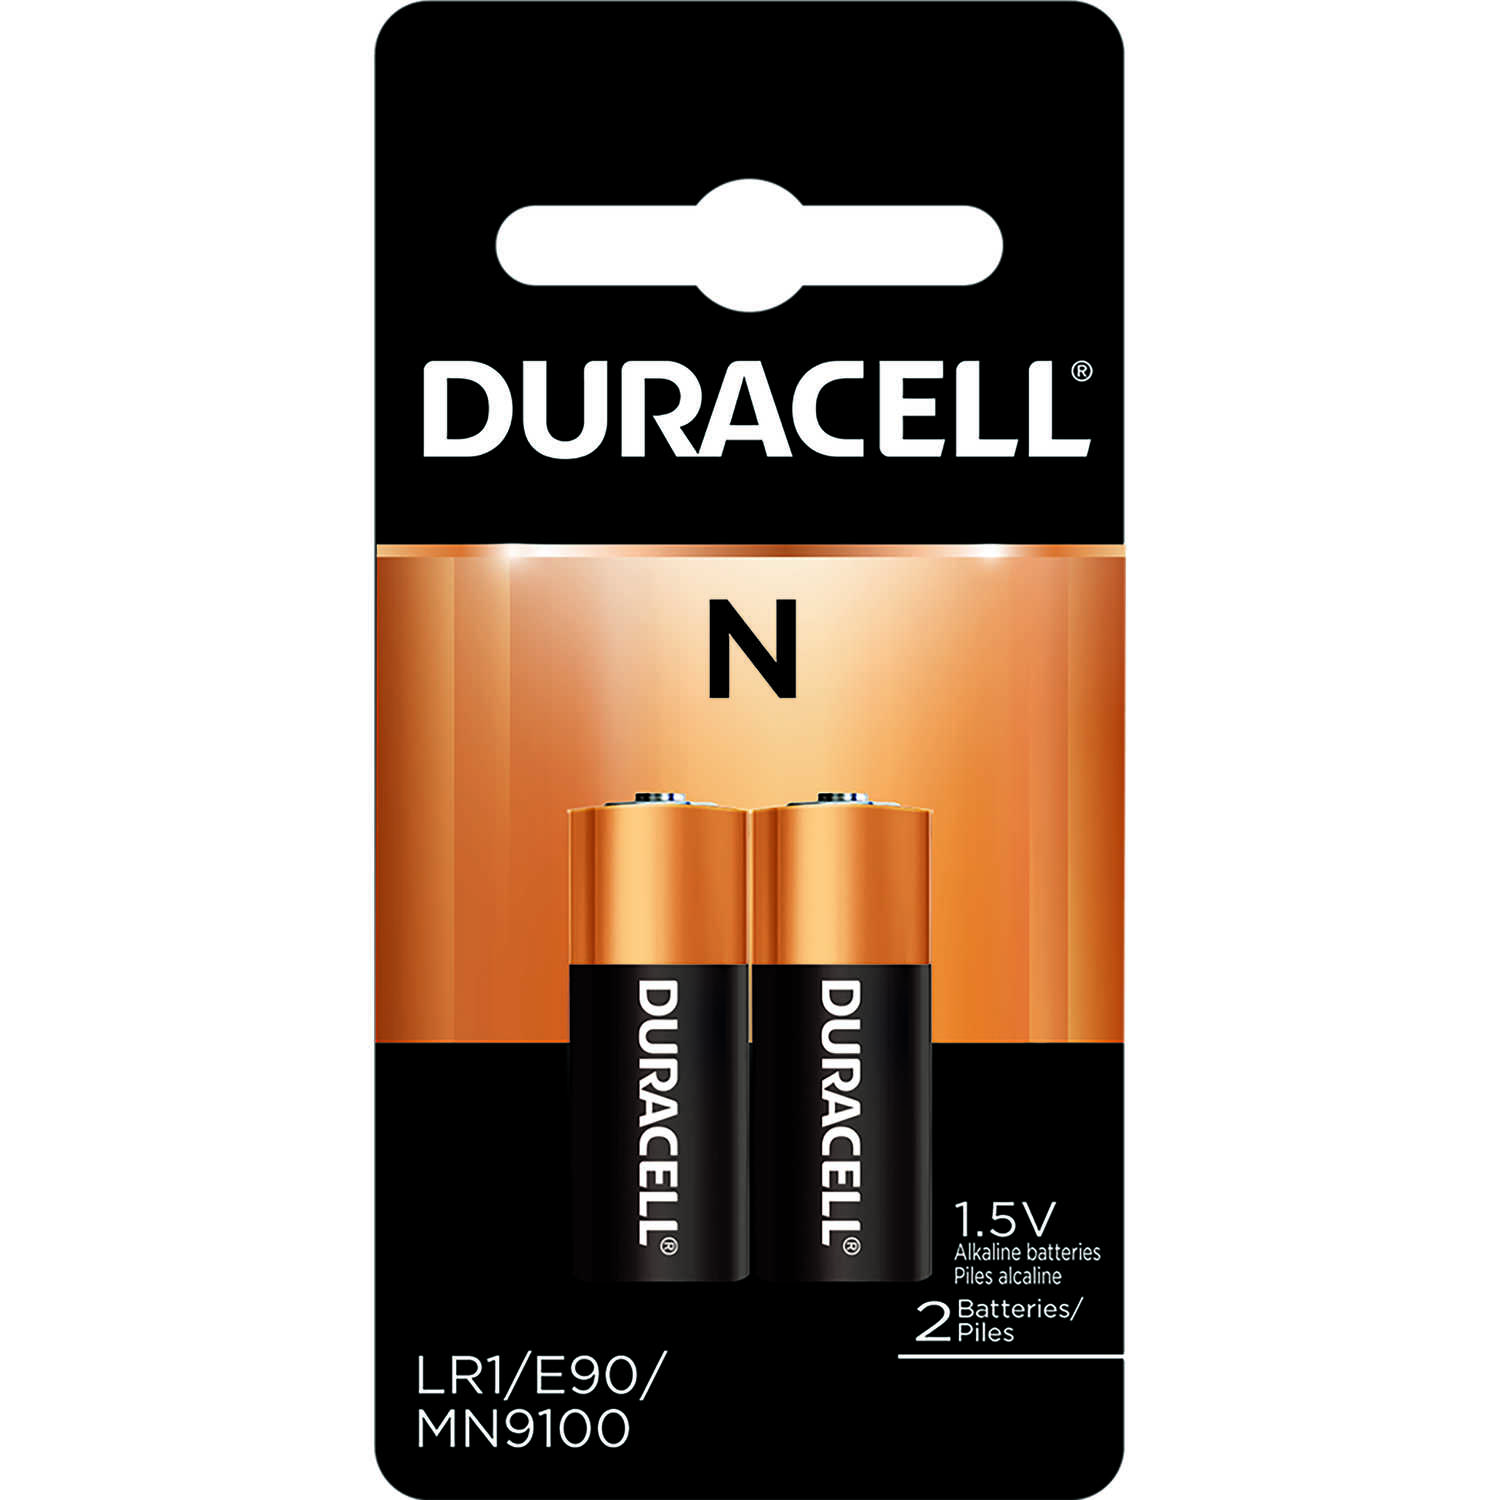 Duracell  Alkaline  Medical Battery  MN9100B2PK  2 pk 1.5 volt N